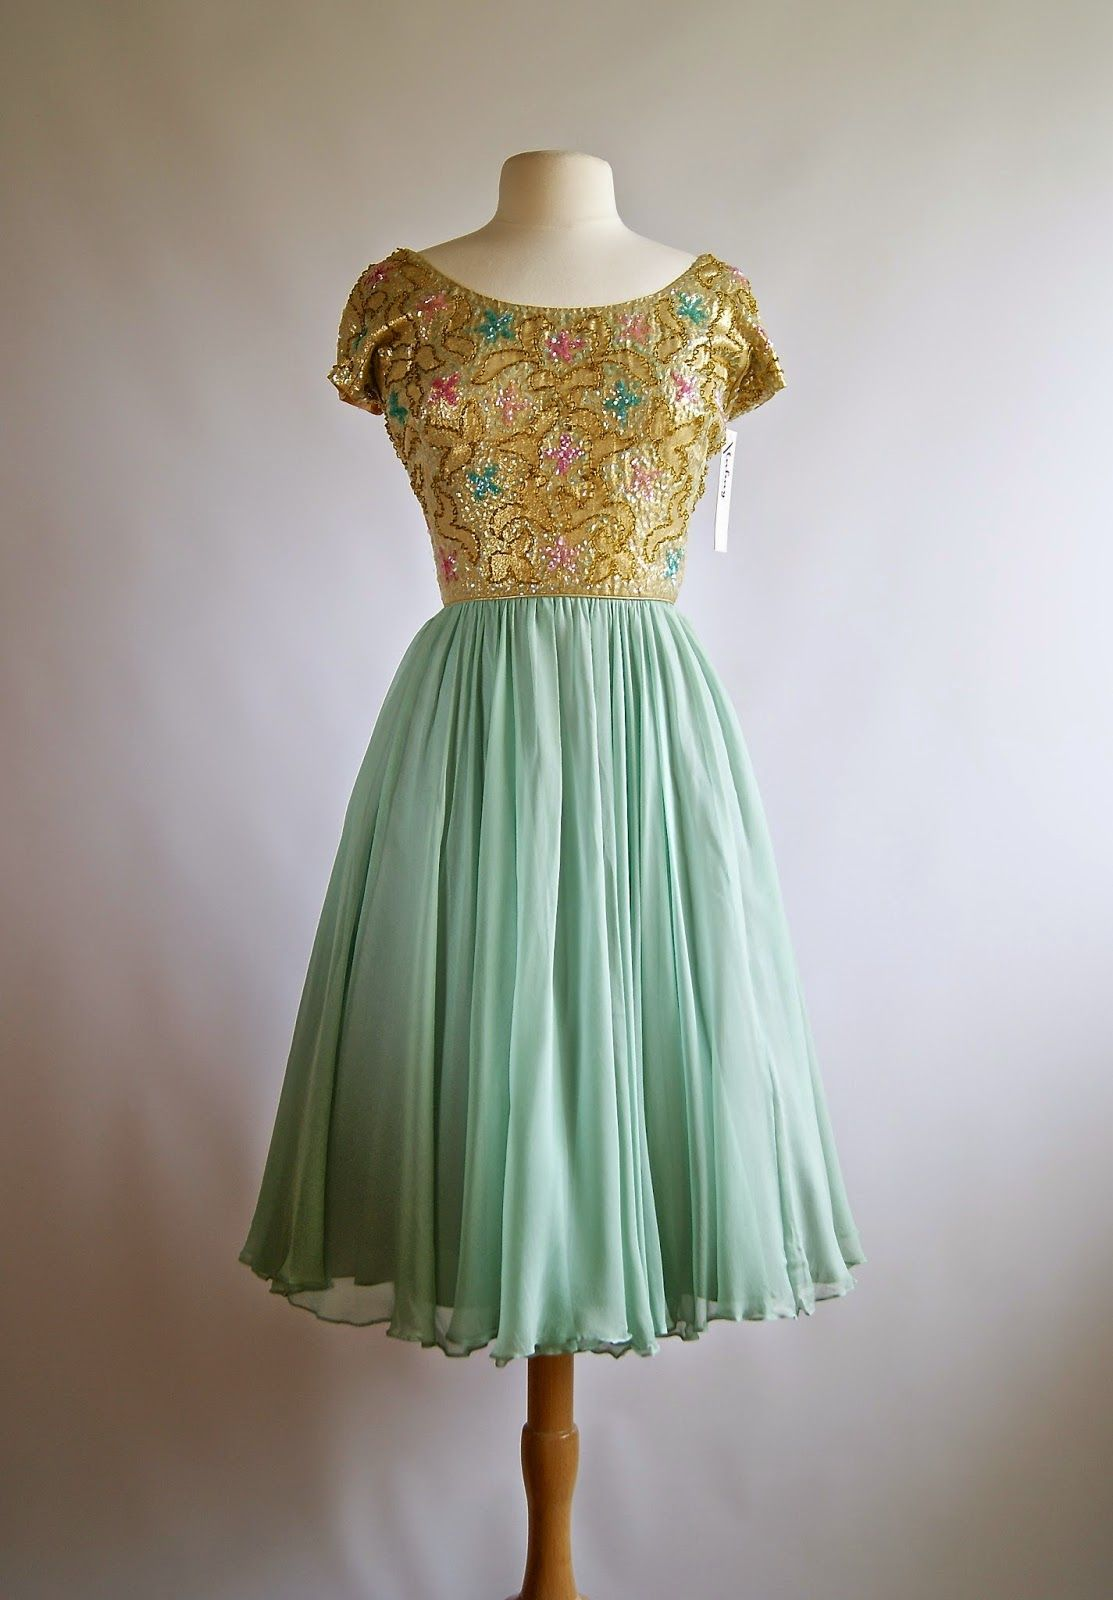 Xtabay Vintage Clothing Boutique - Portland, Oregon | For The Love ...